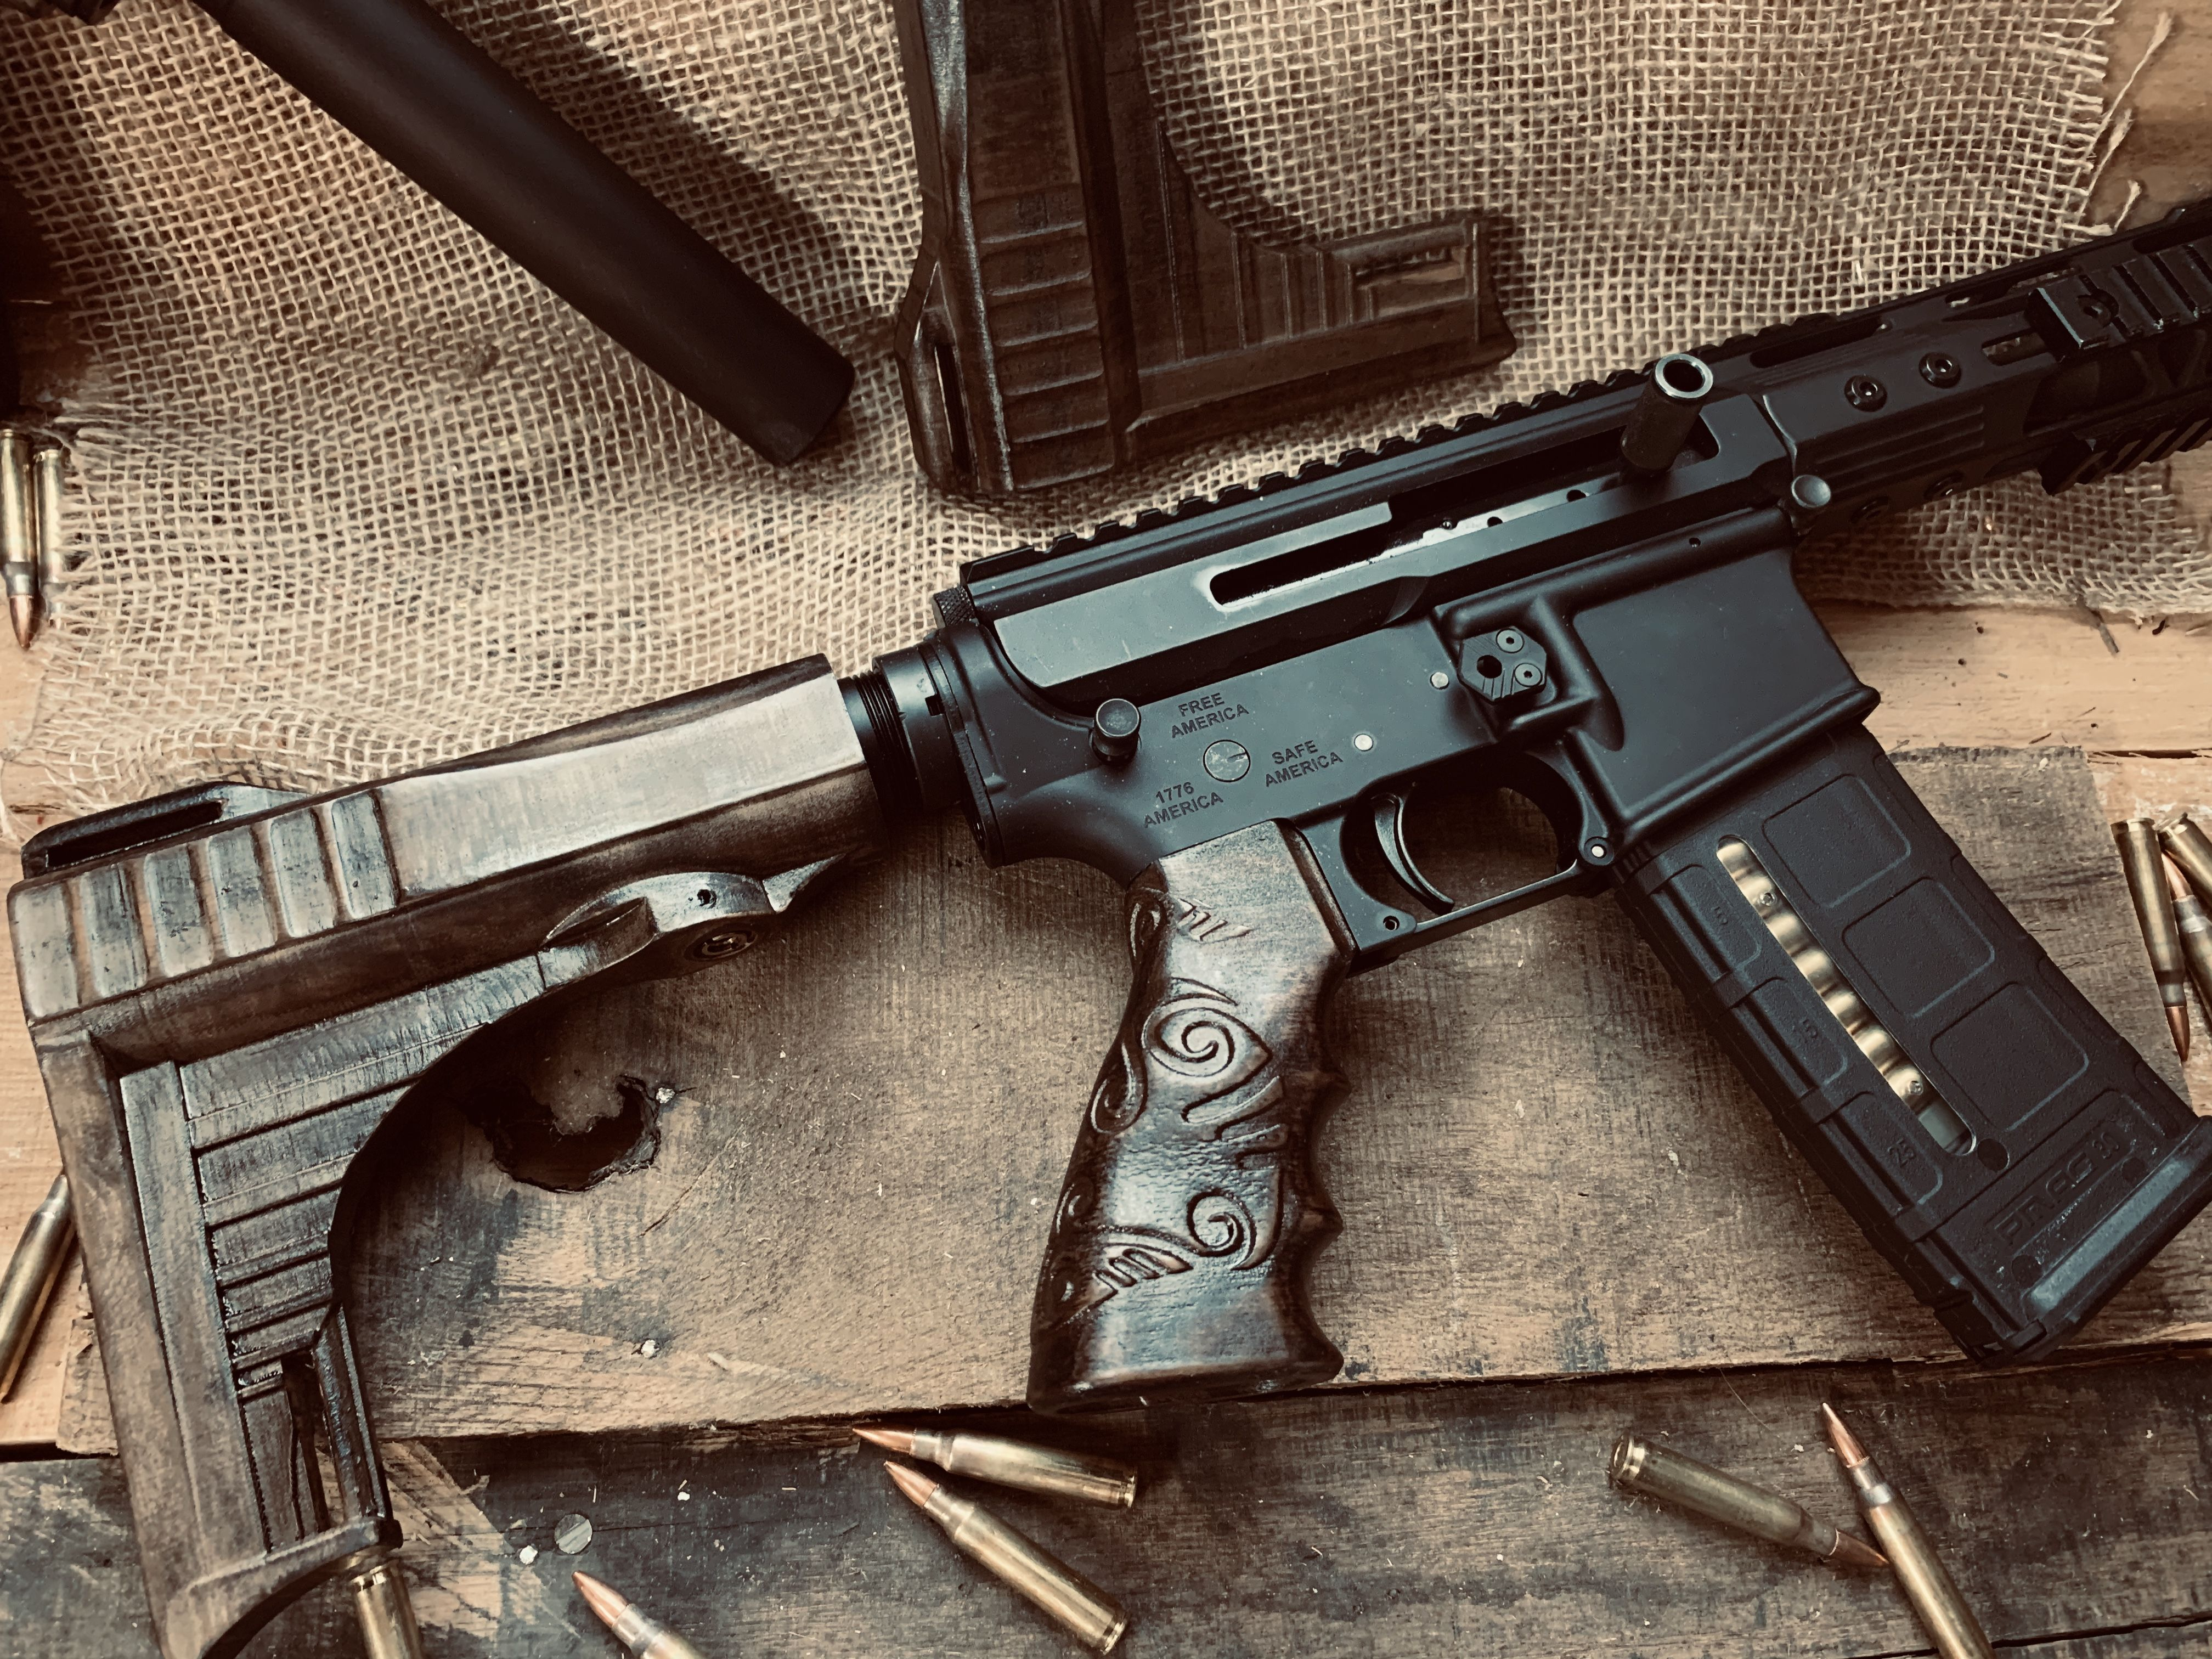 Pin on ar15 products